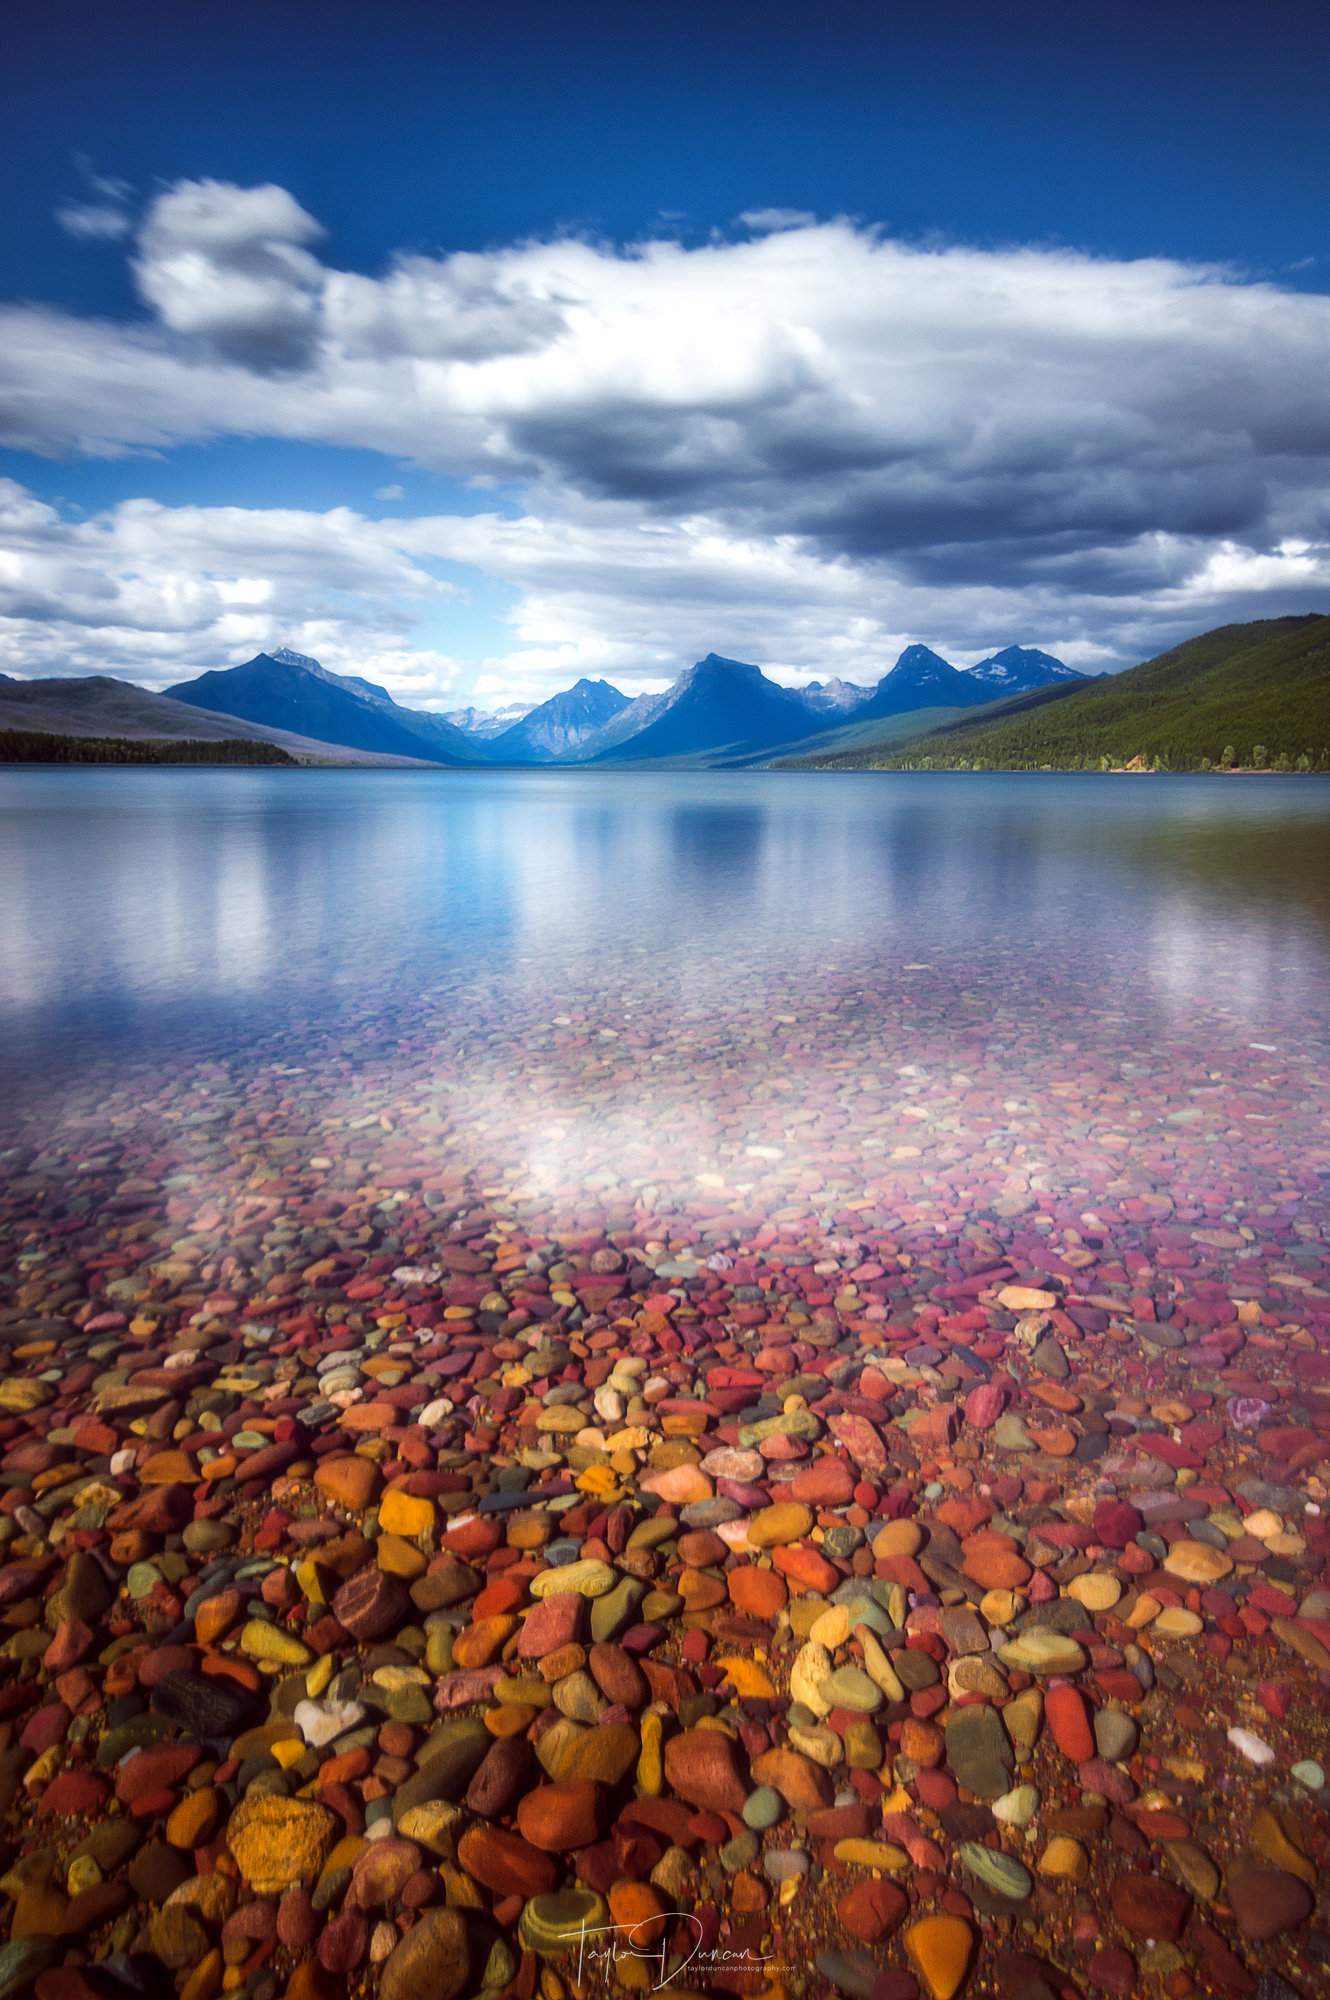 The rocks of Lake McDonald are a must see in the park